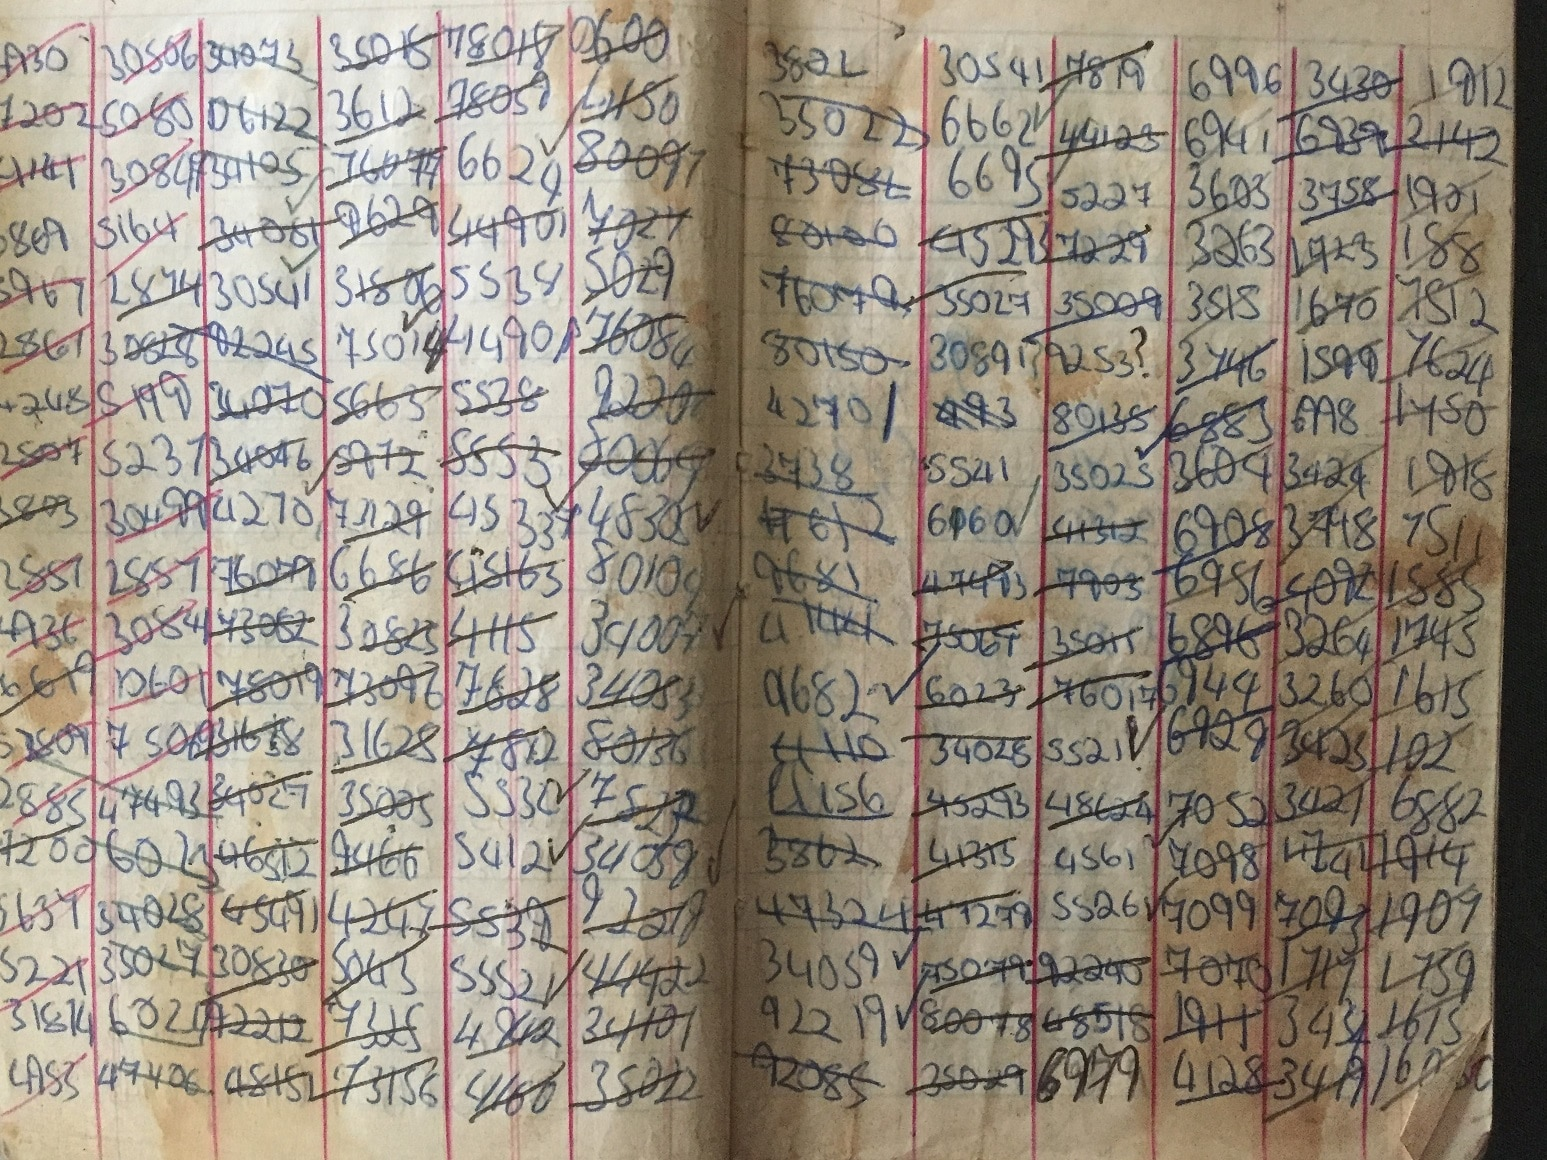 1970s railway enthusiast trip notebook with list of Barry Scrapyard locos